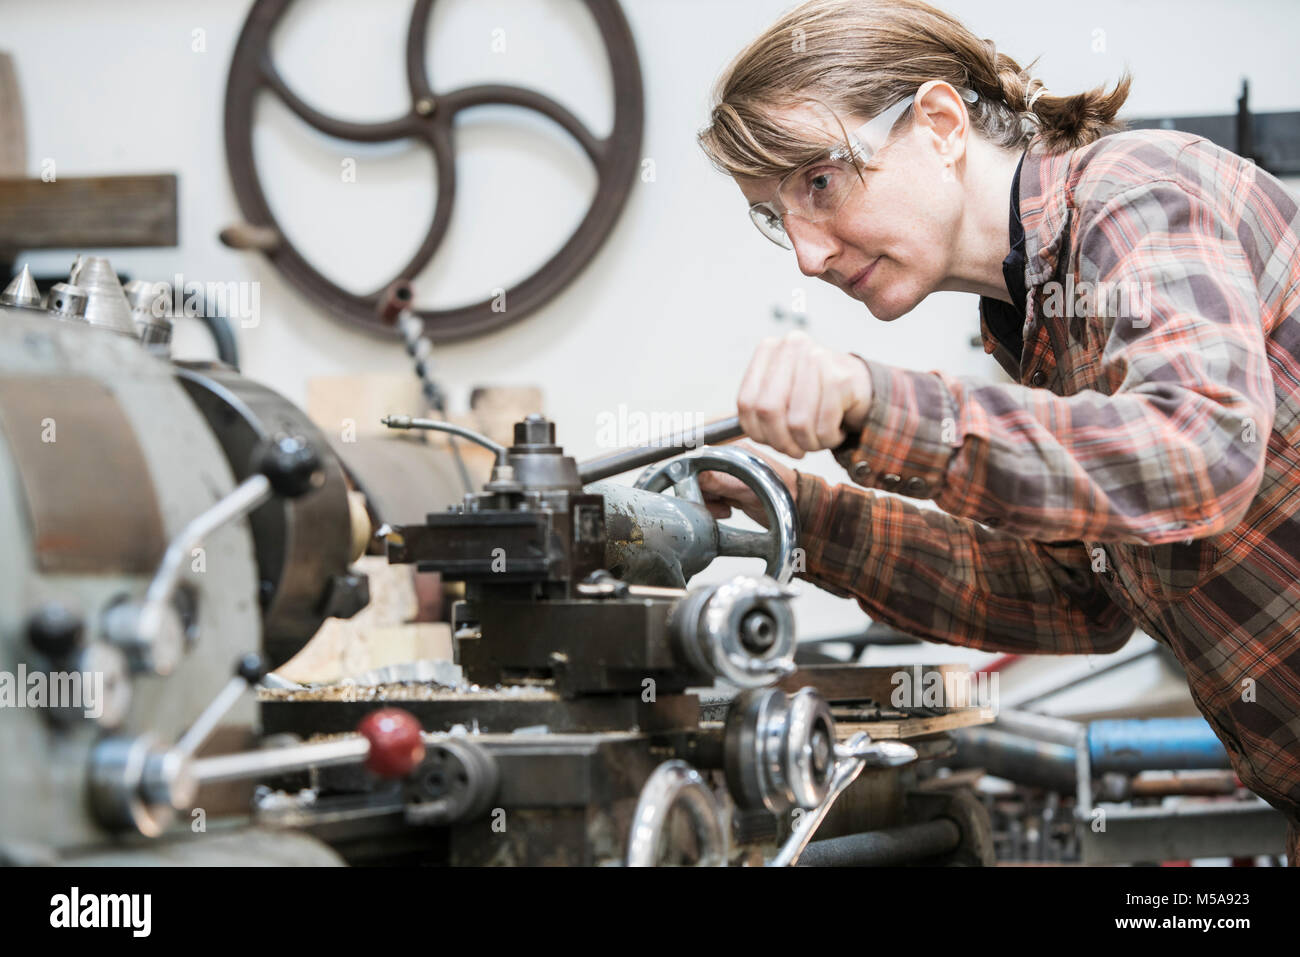 Woman wearing safety glasses standing in a metal workshop, working at metal lathe machine. - Stock Image